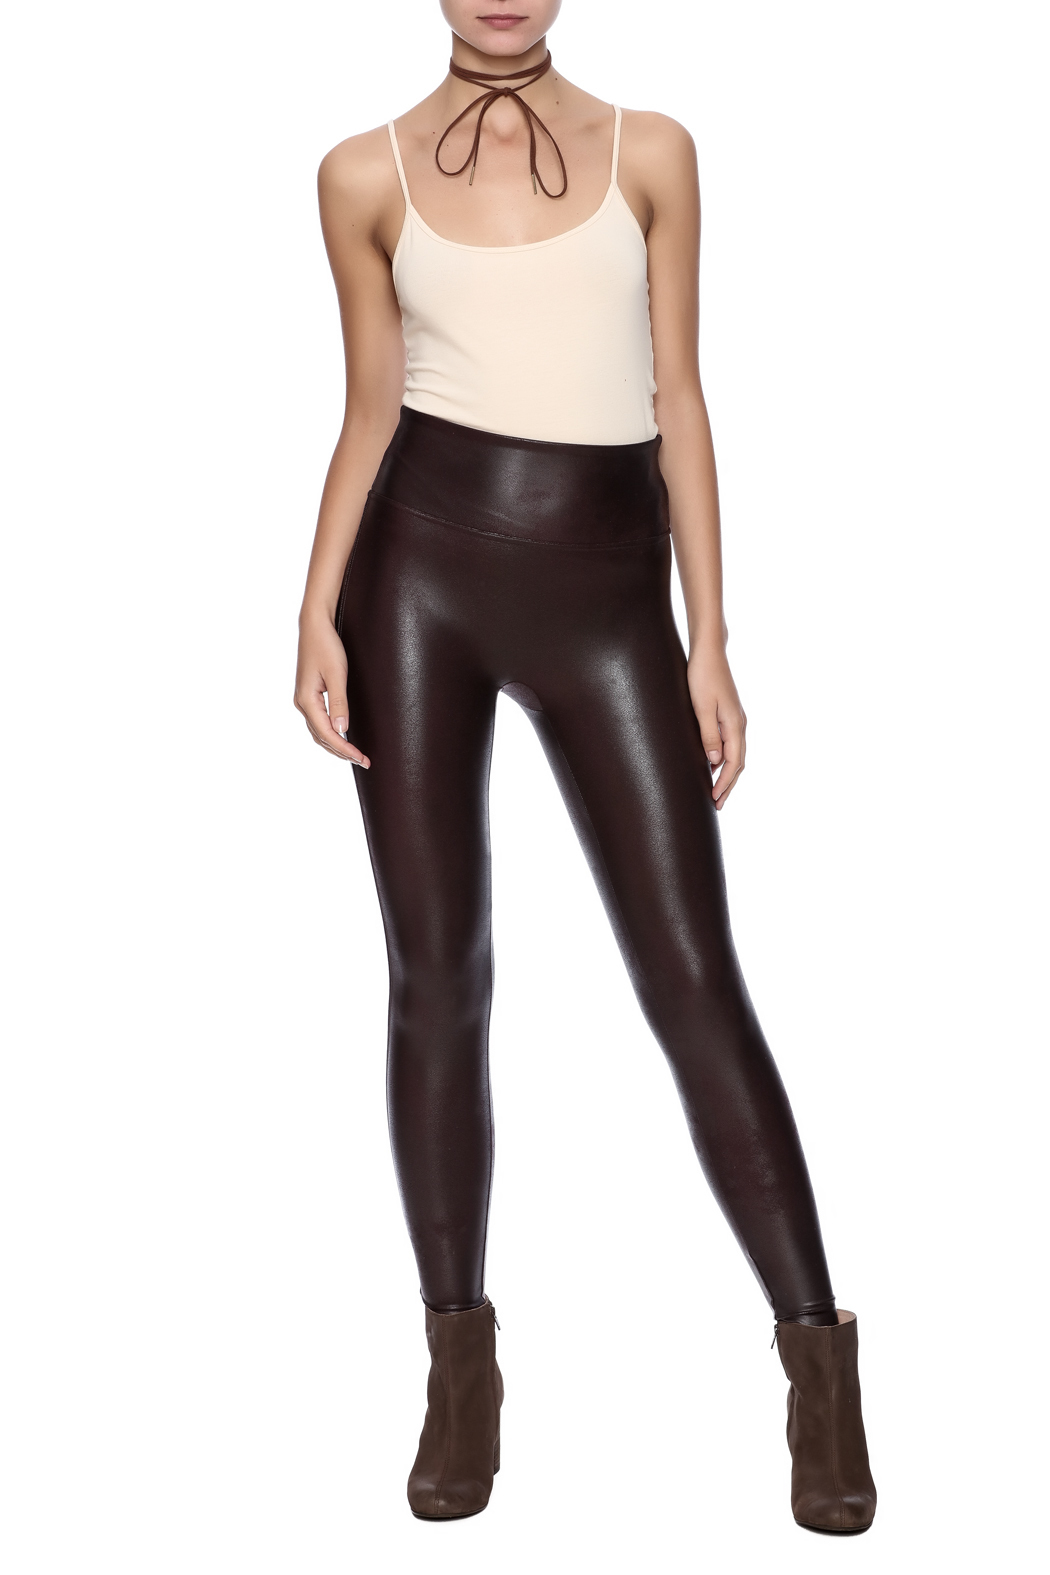 Spanx Faux Leather Leggings From Michigan By Scarborough